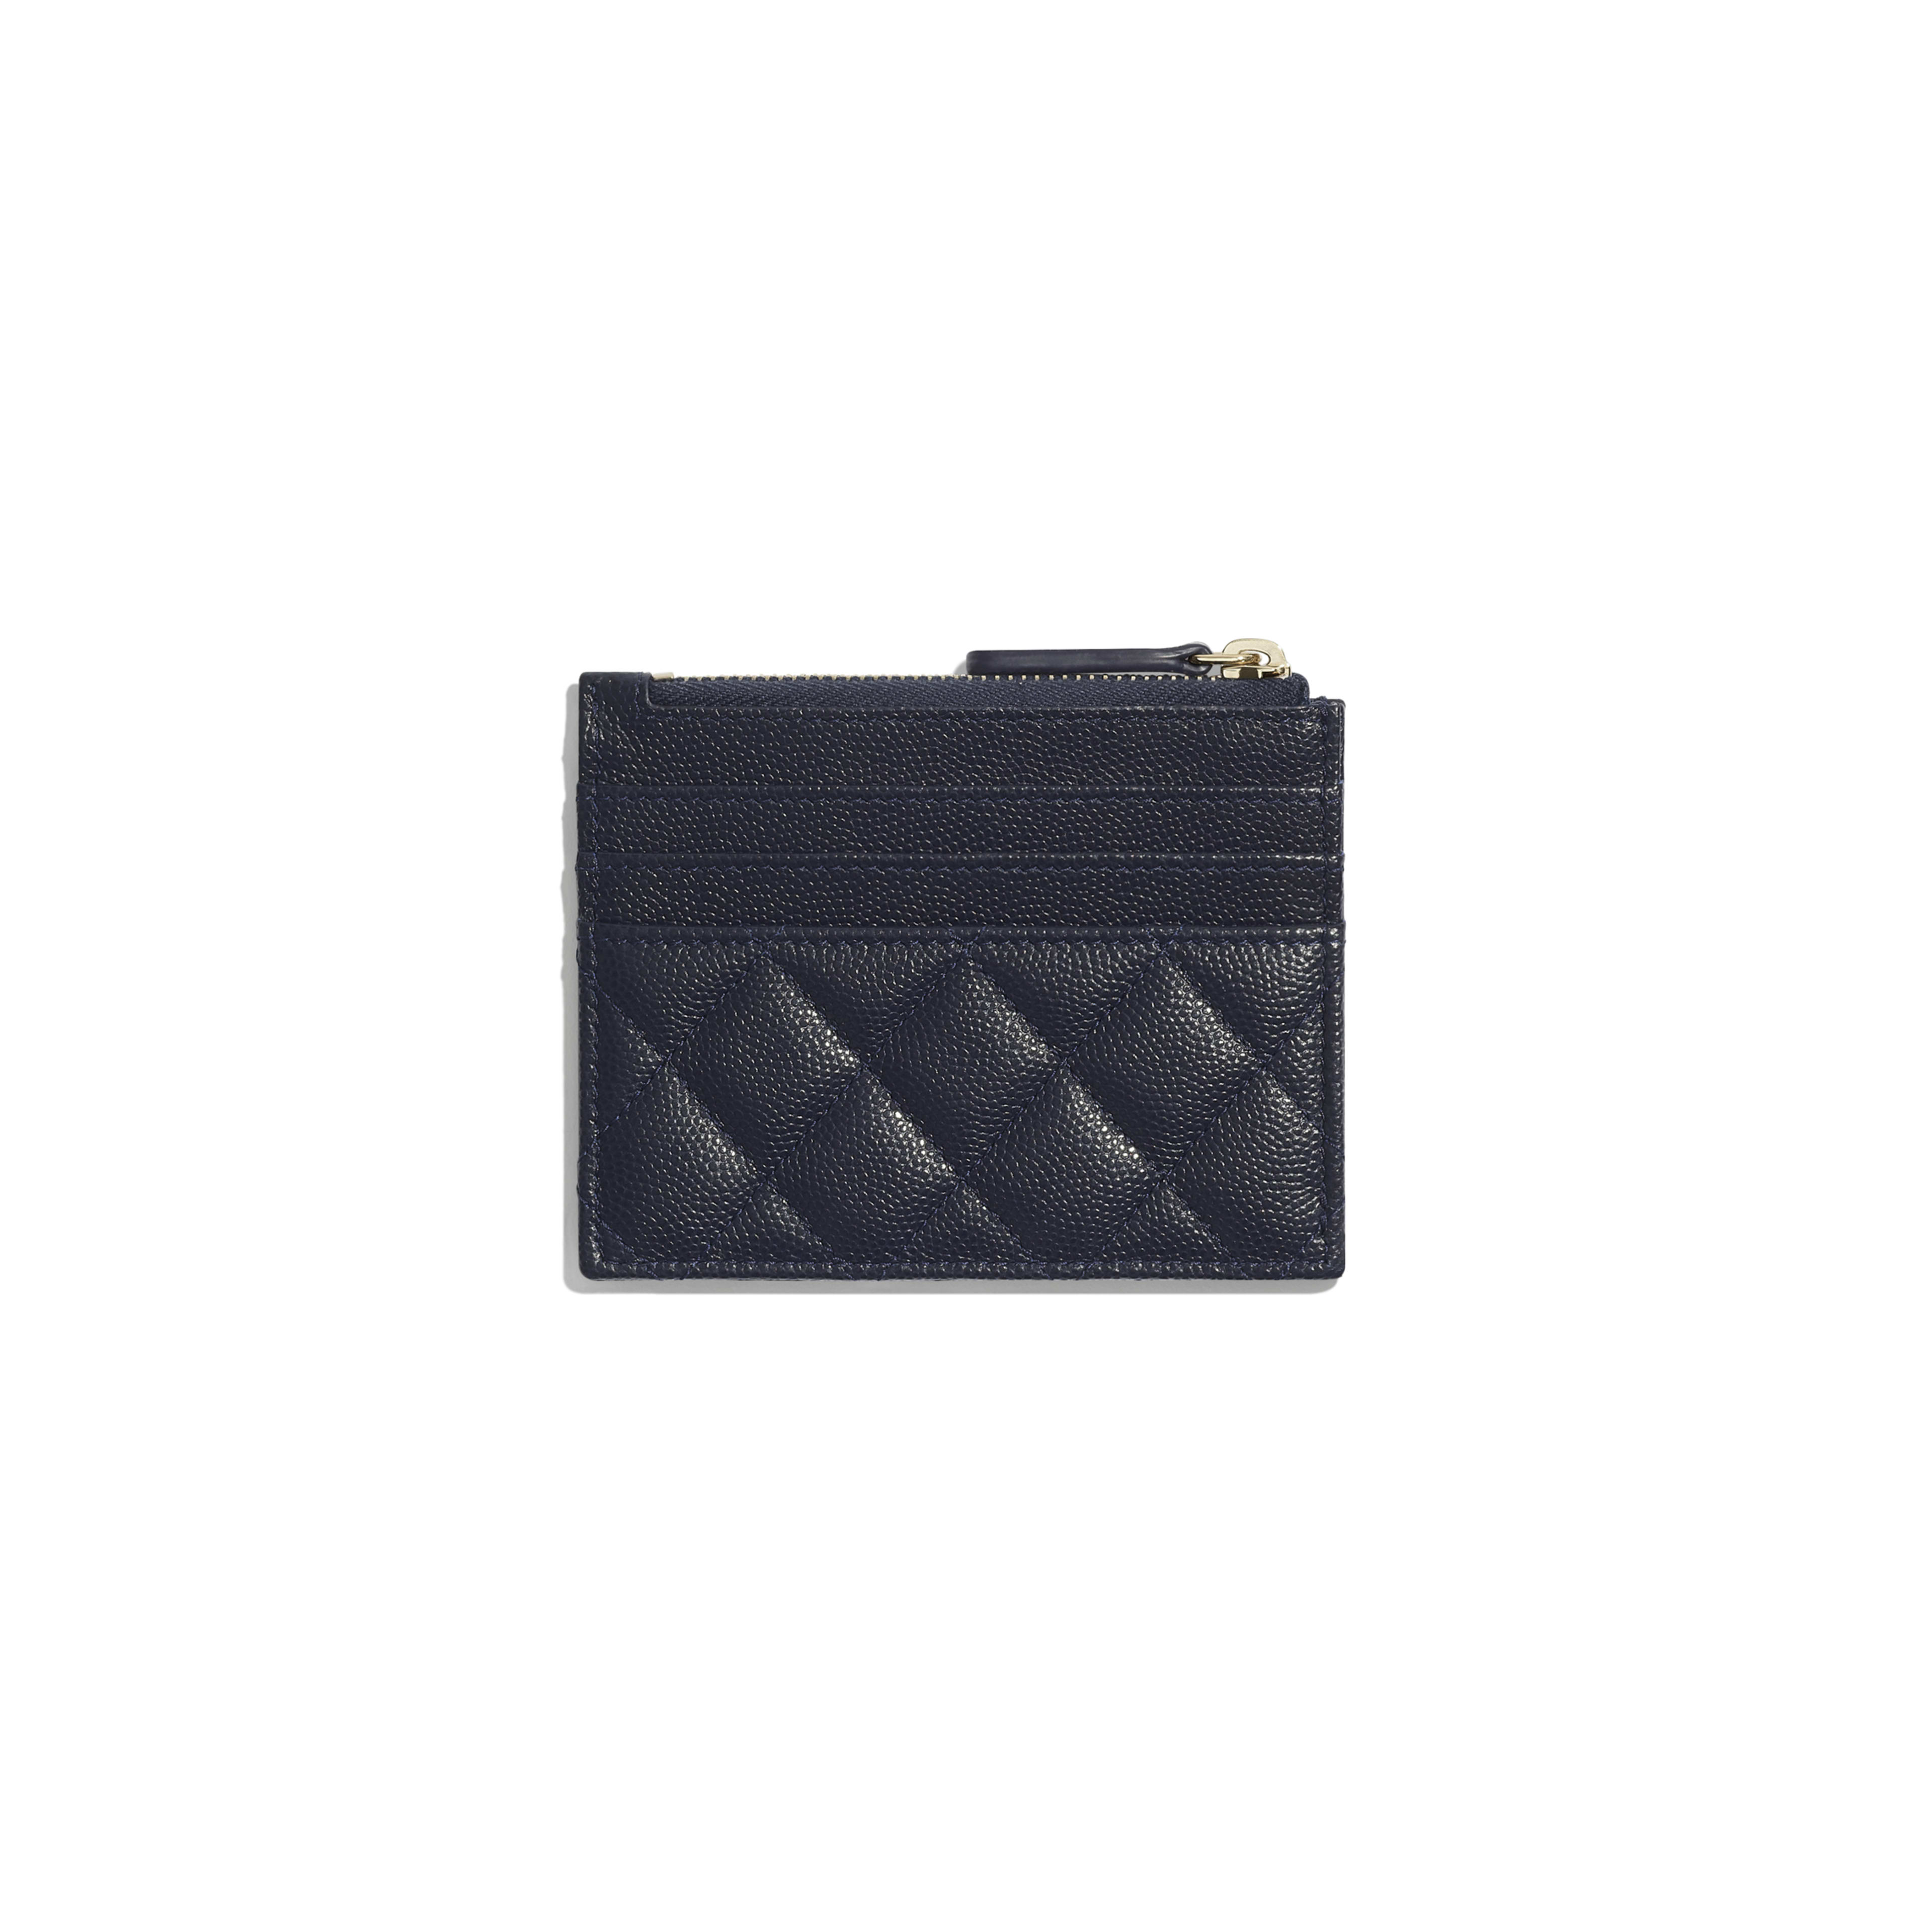 Classic Card Holder - Navy Blue - Grained Calfskin & Gold-Tone Metal - Alternative view - see full sized version